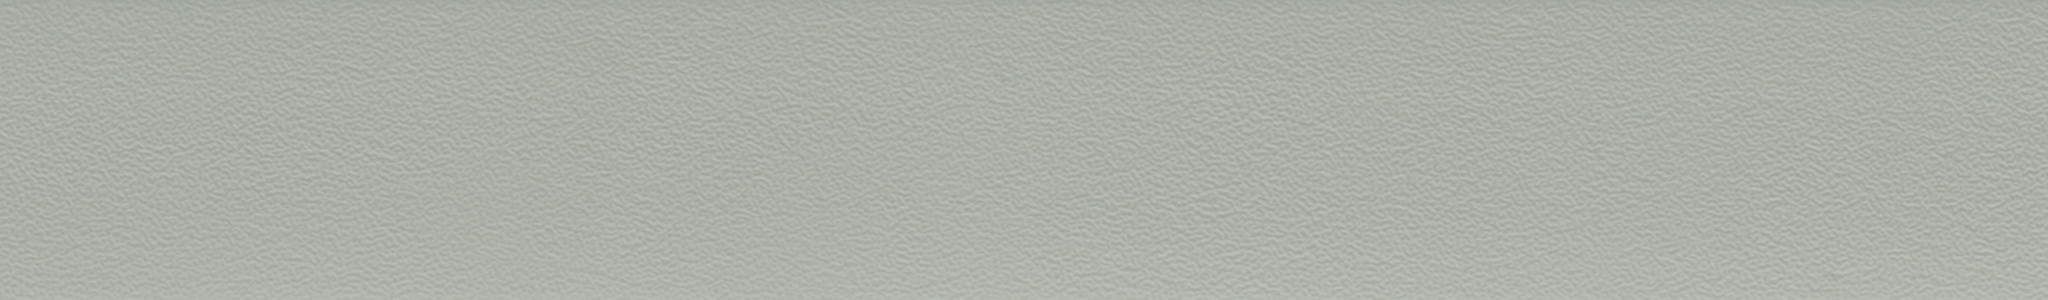 HU 170747 Chant ABS Gris Perle 101